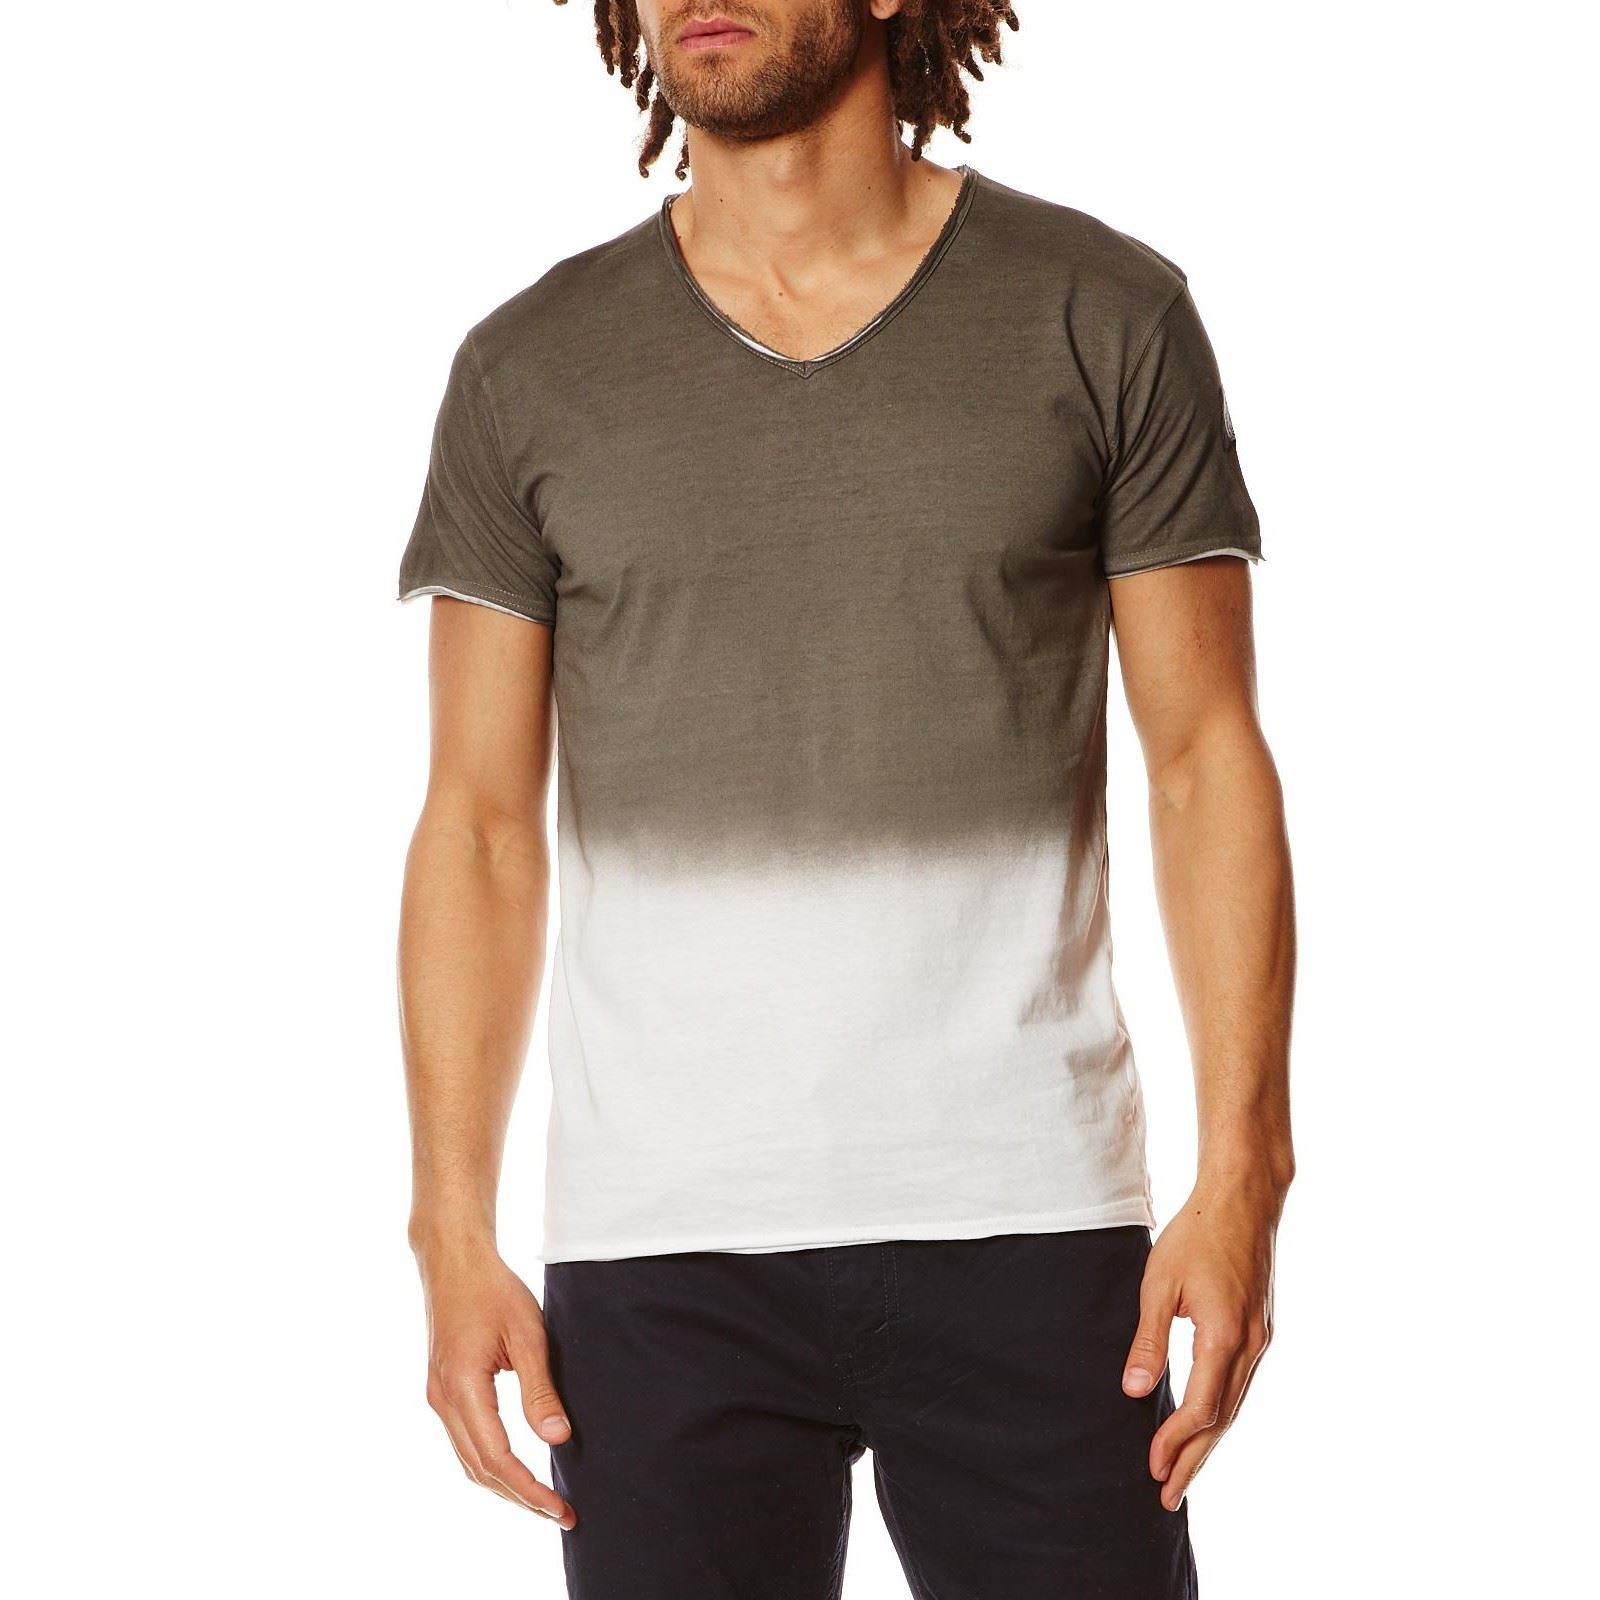 Anorith Courtes Gris Life Homme N shirt Hope eT Manches V PZOikXuT